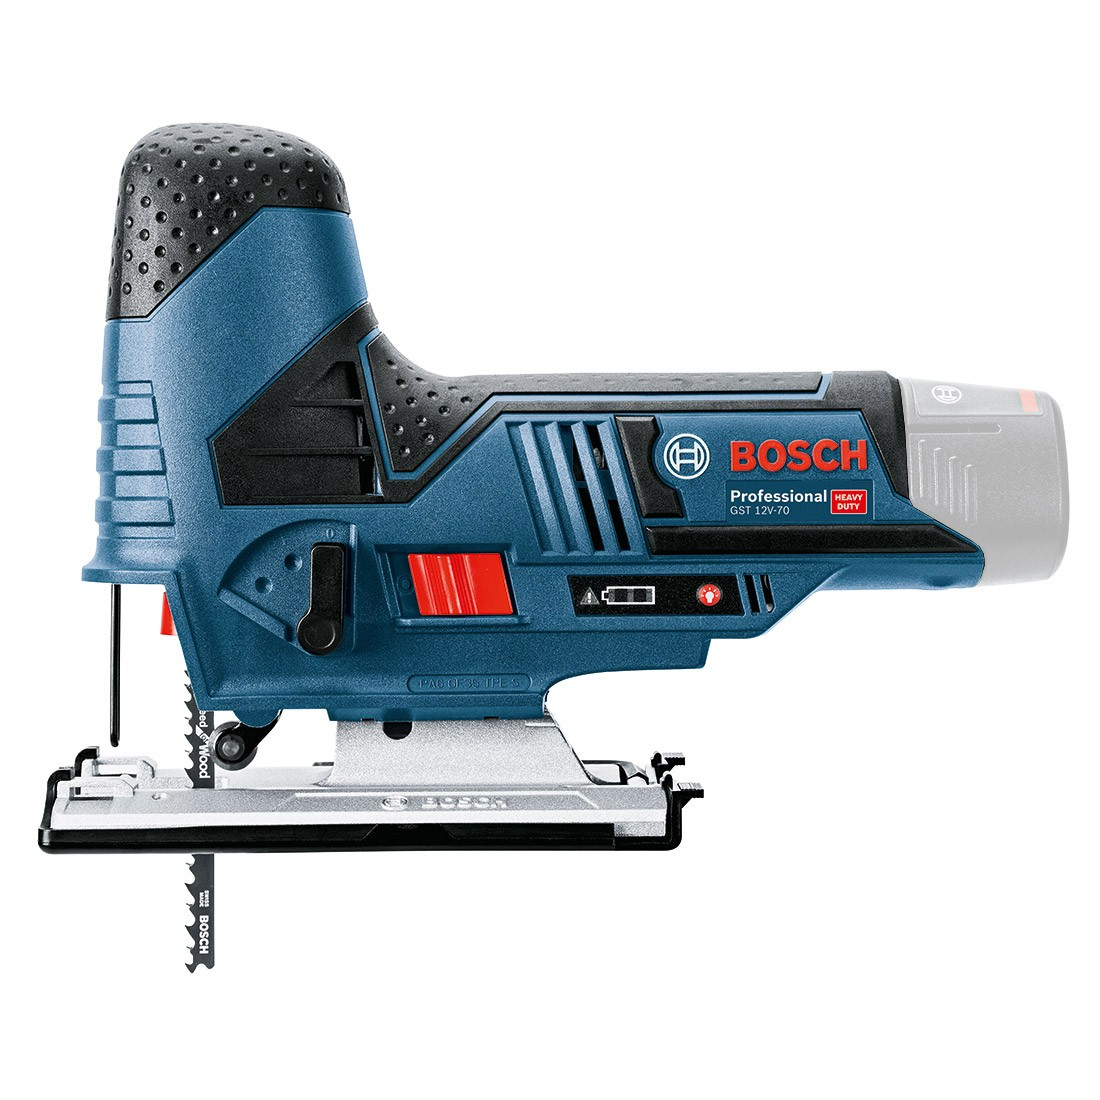 bosch gst 10 8 v li 12v 70 cordless jigsaw body. Black Bedroom Furniture Sets. Home Design Ideas